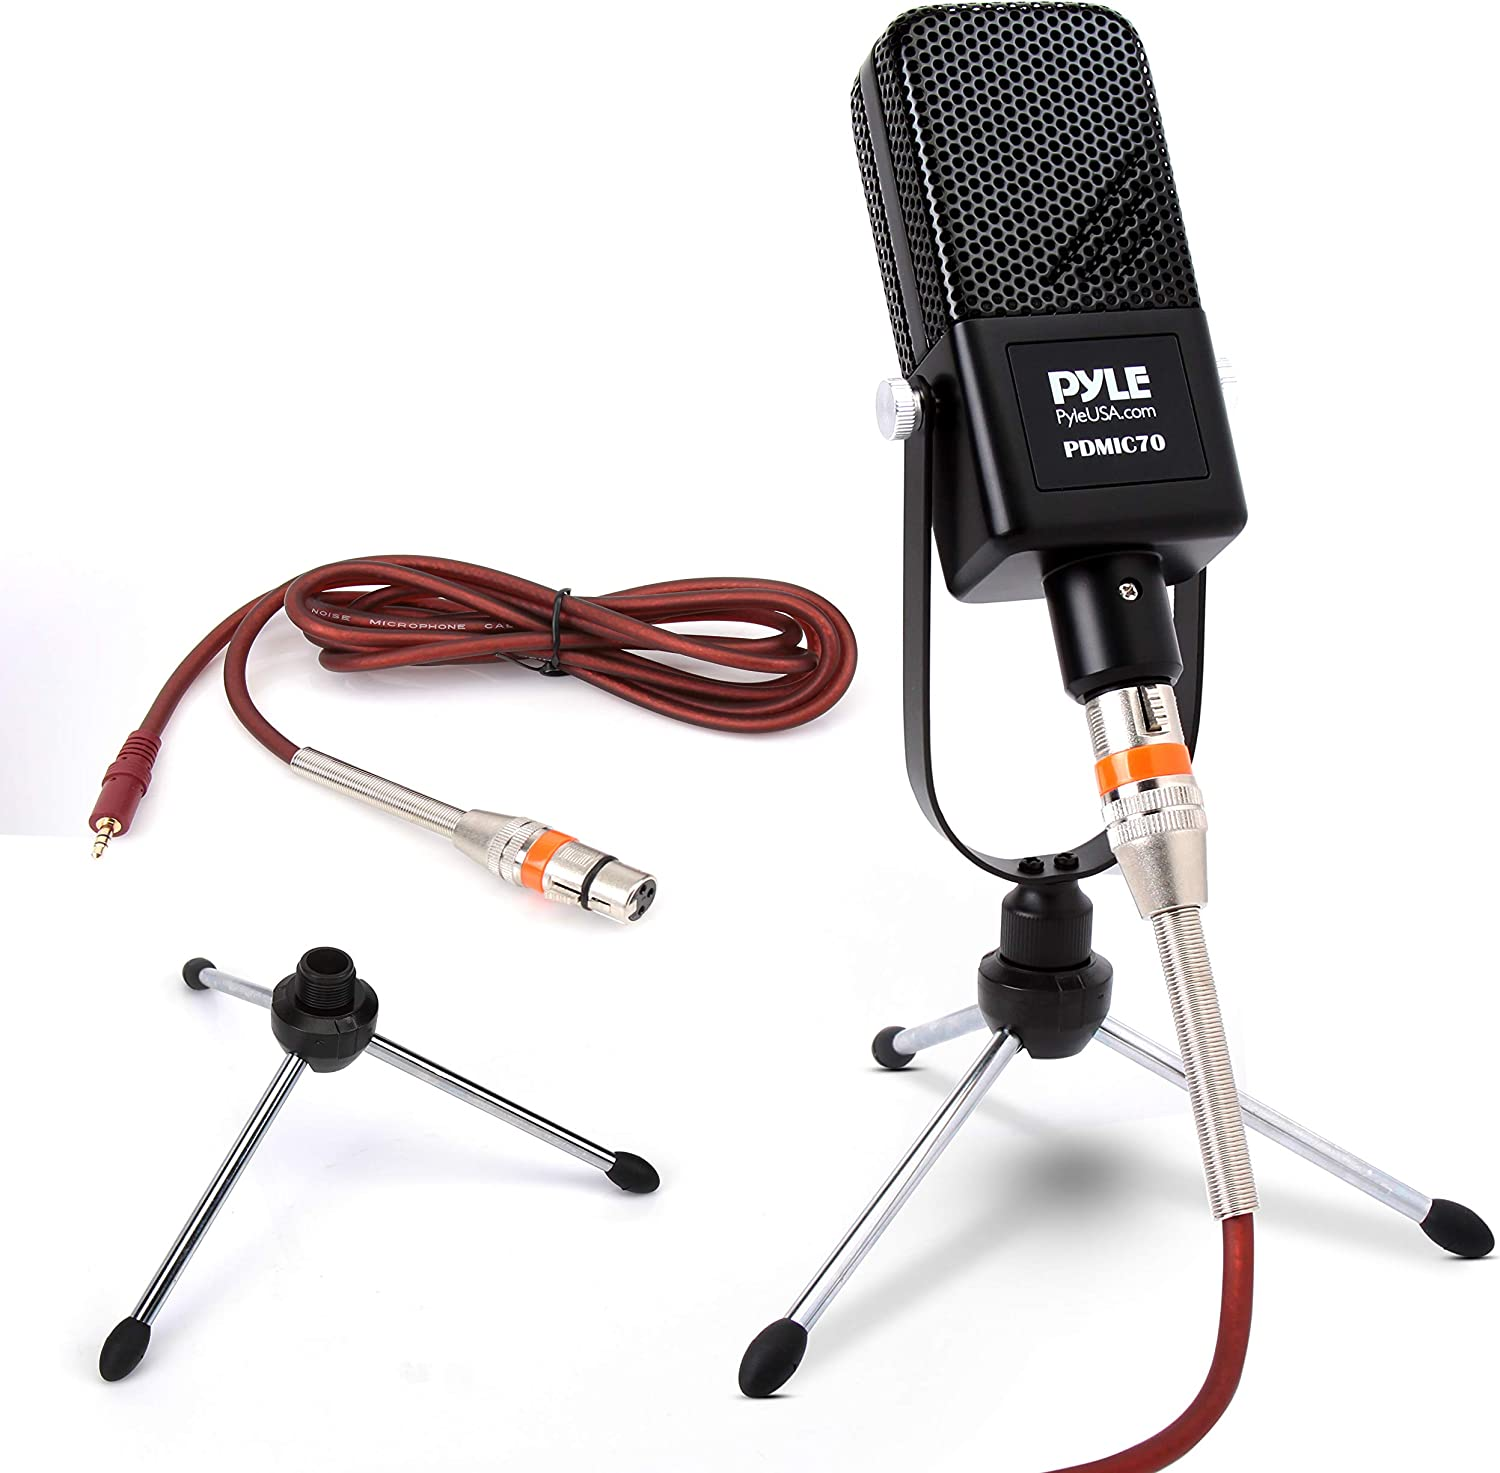 Large Diaphragm Condenser Microphone Kit - Cardioid Condenser Mic w/Desktop Stand, LED, XLR Audio Cable, for Gaming, Streaming, Podcast, Recording, Studio Vocal, YouTube, Voice Over - Pyle PDMIC70